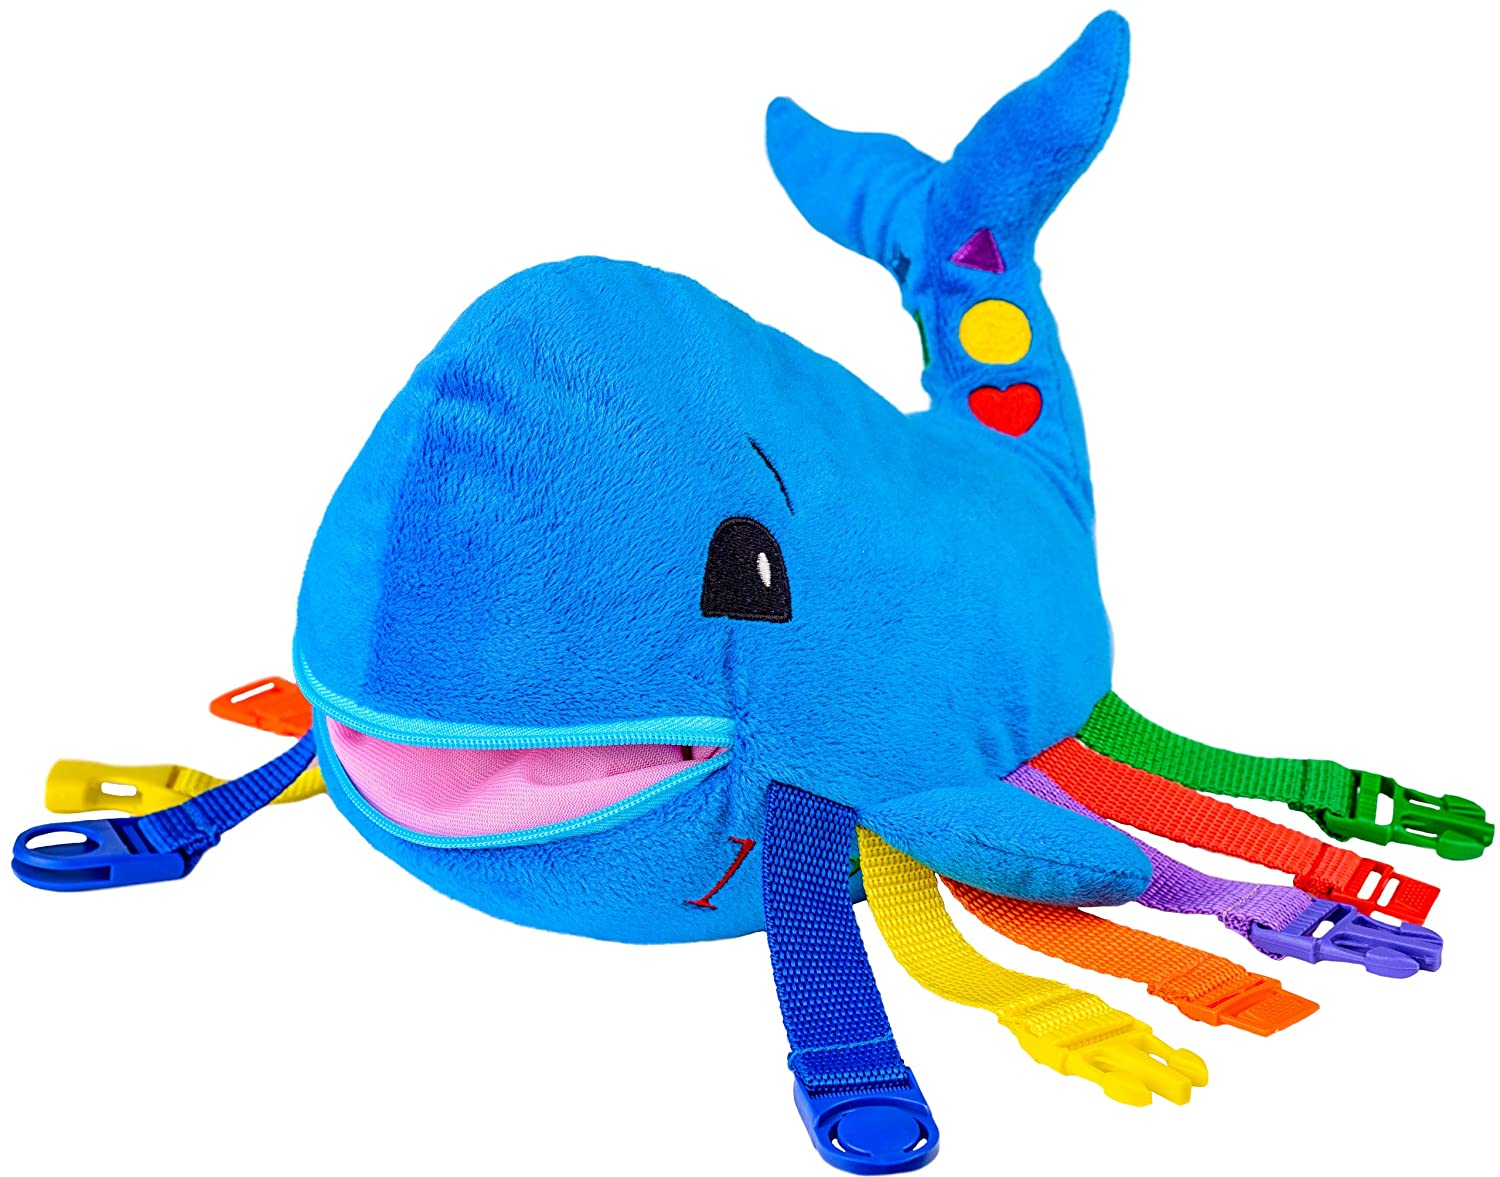 """BUCKLE TOY """"Blu"""" Whale - Toddler Early Learning Basic Life Skills Children's Plush Travel Activity Buckle Toy Inc"""